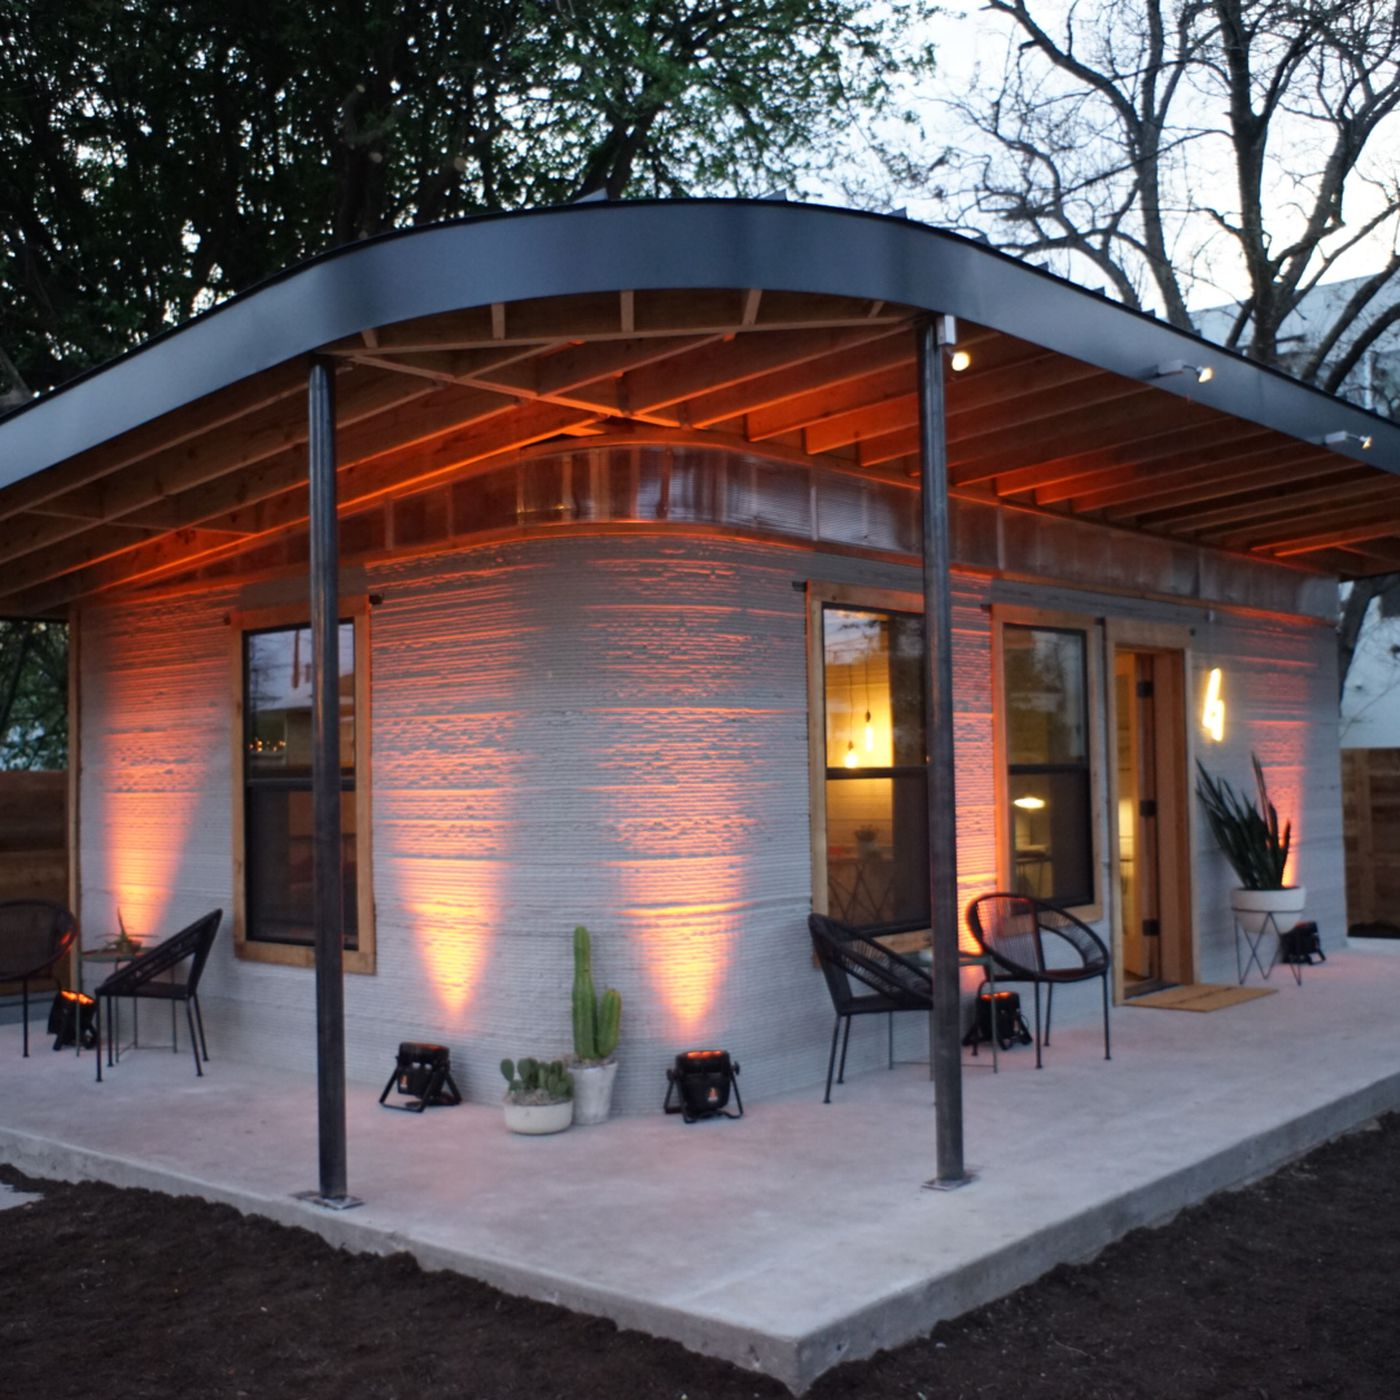 This cheap 3d printed home is a start for the 1 billion who lack shelter